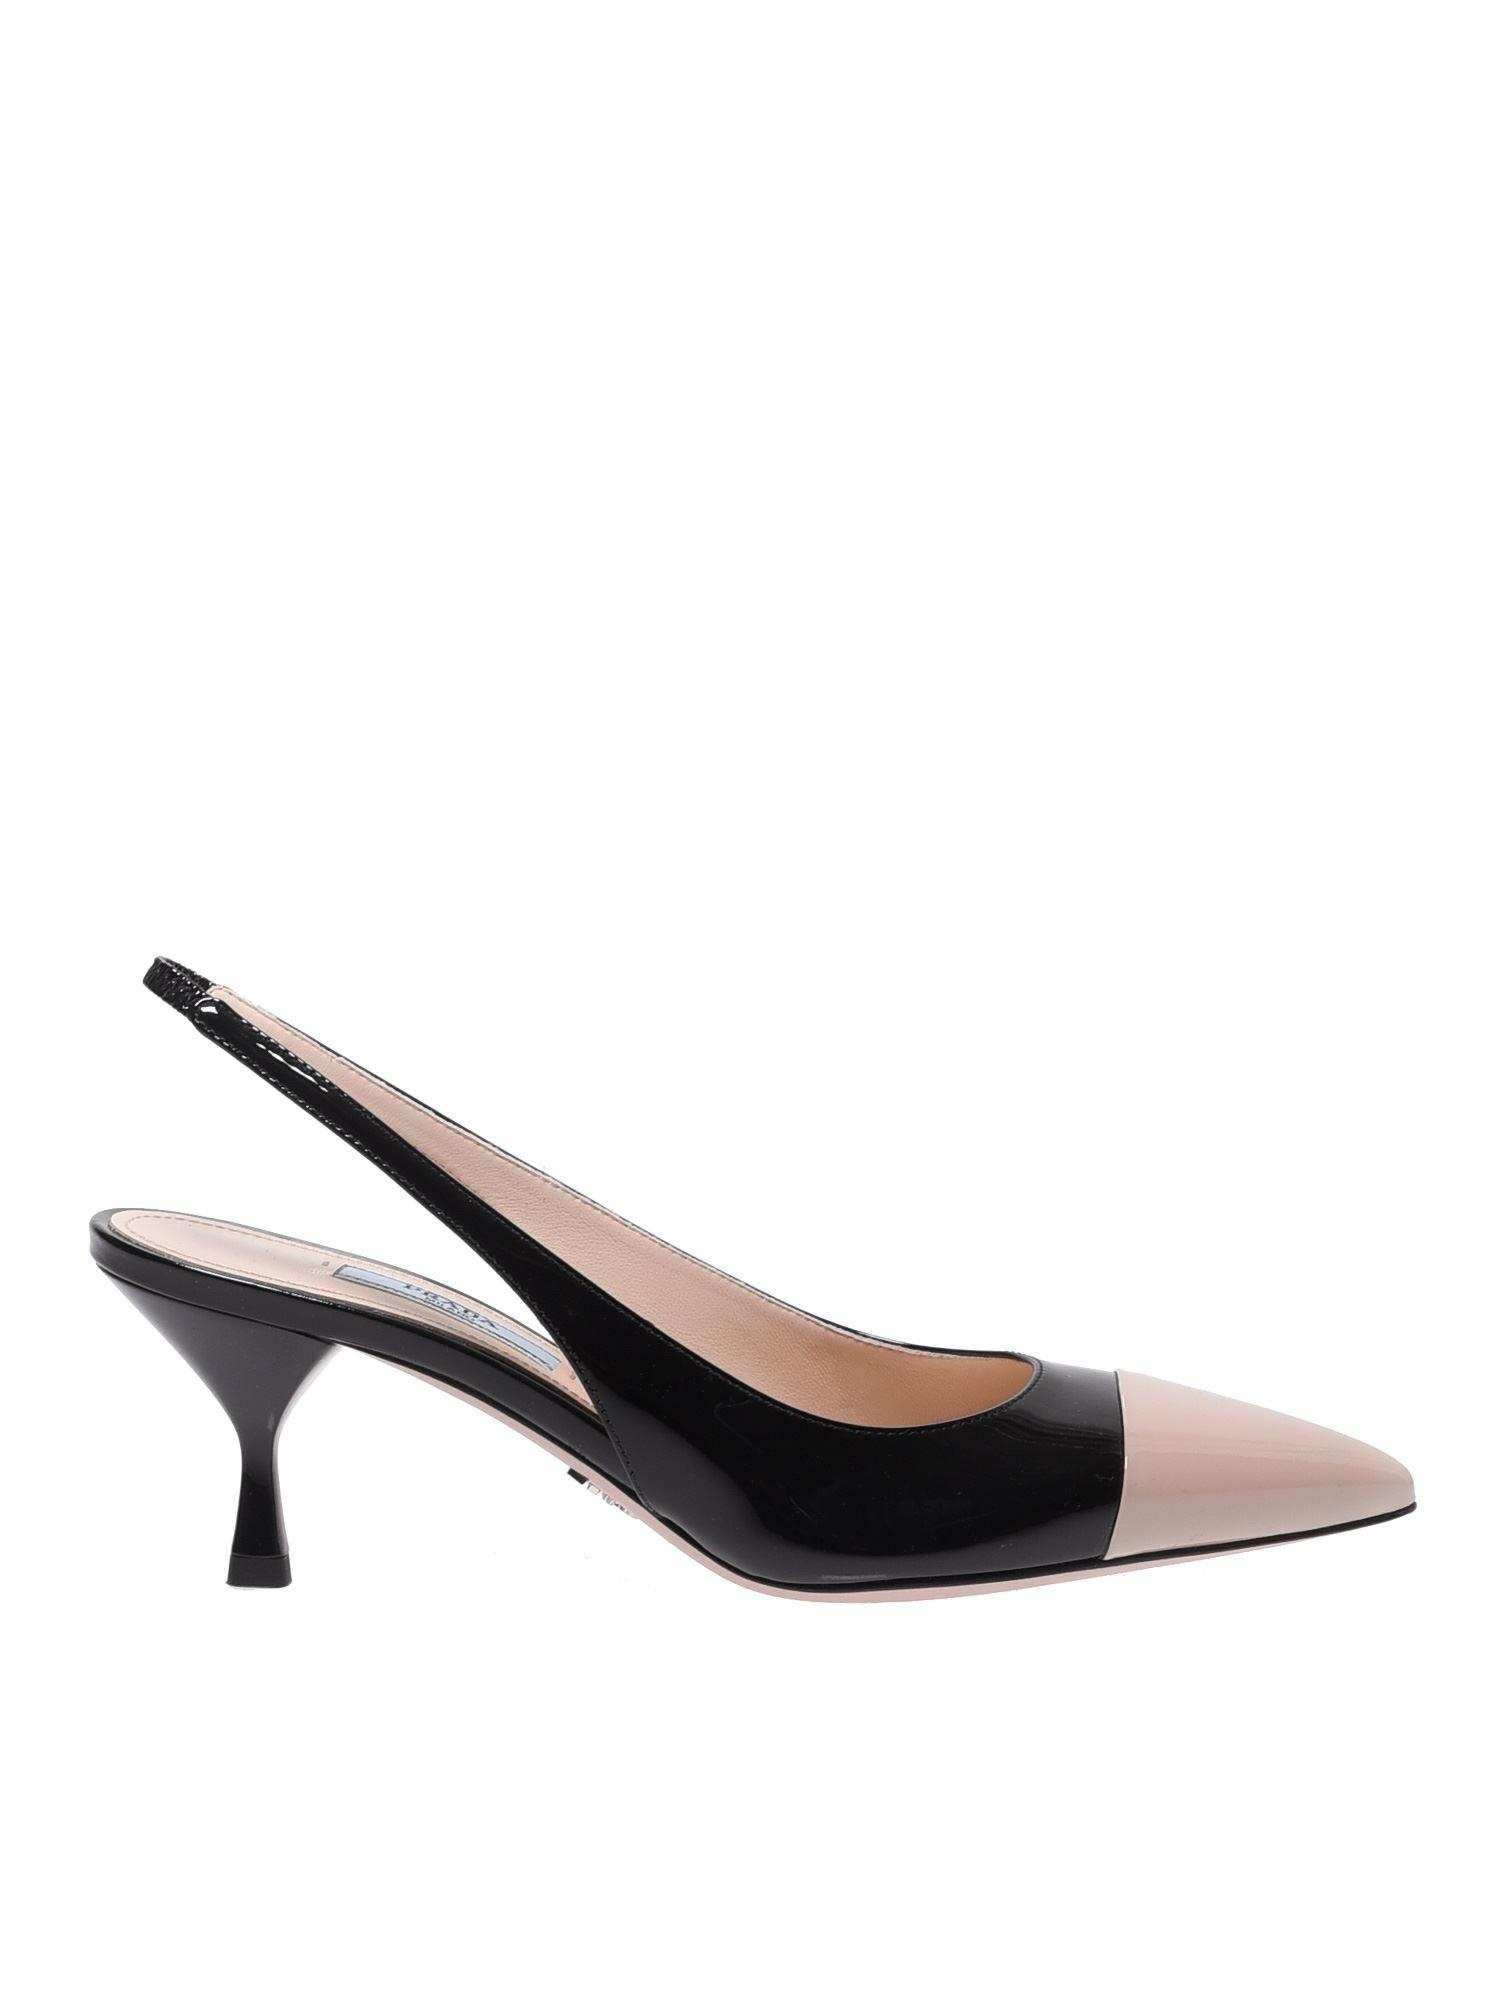 7d03aa57fe47 Prada Sling Back In Black And Pink Leather in Black - Lyst